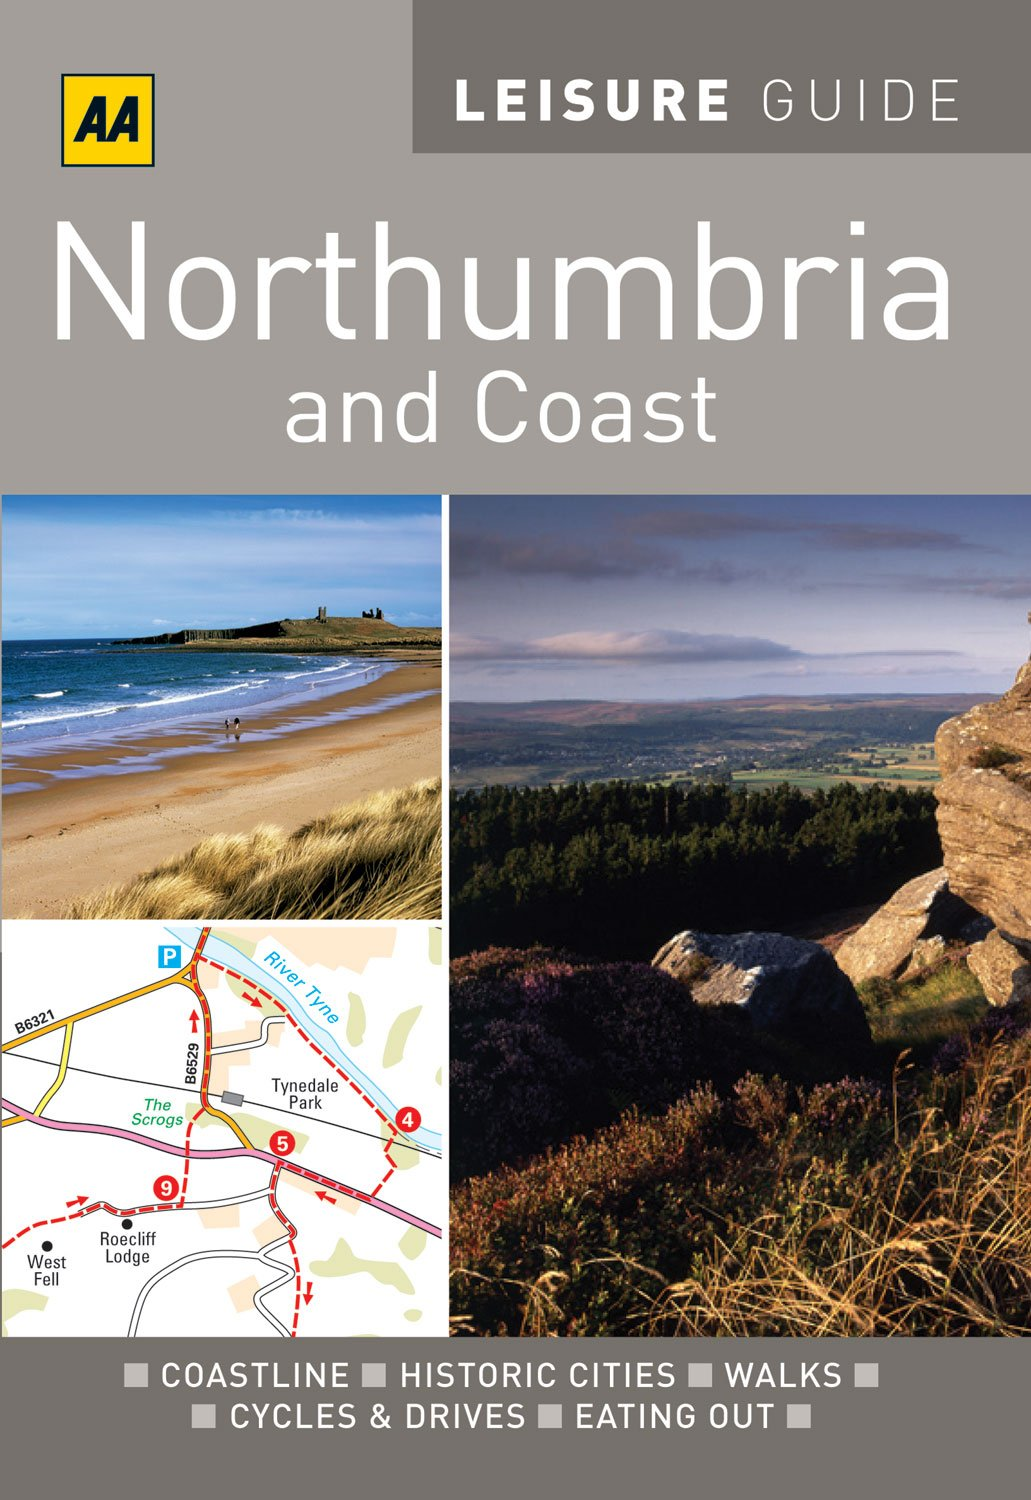 Download AA Leisure Guide Northumbria & Coast (AA Leisure Guides) pdf